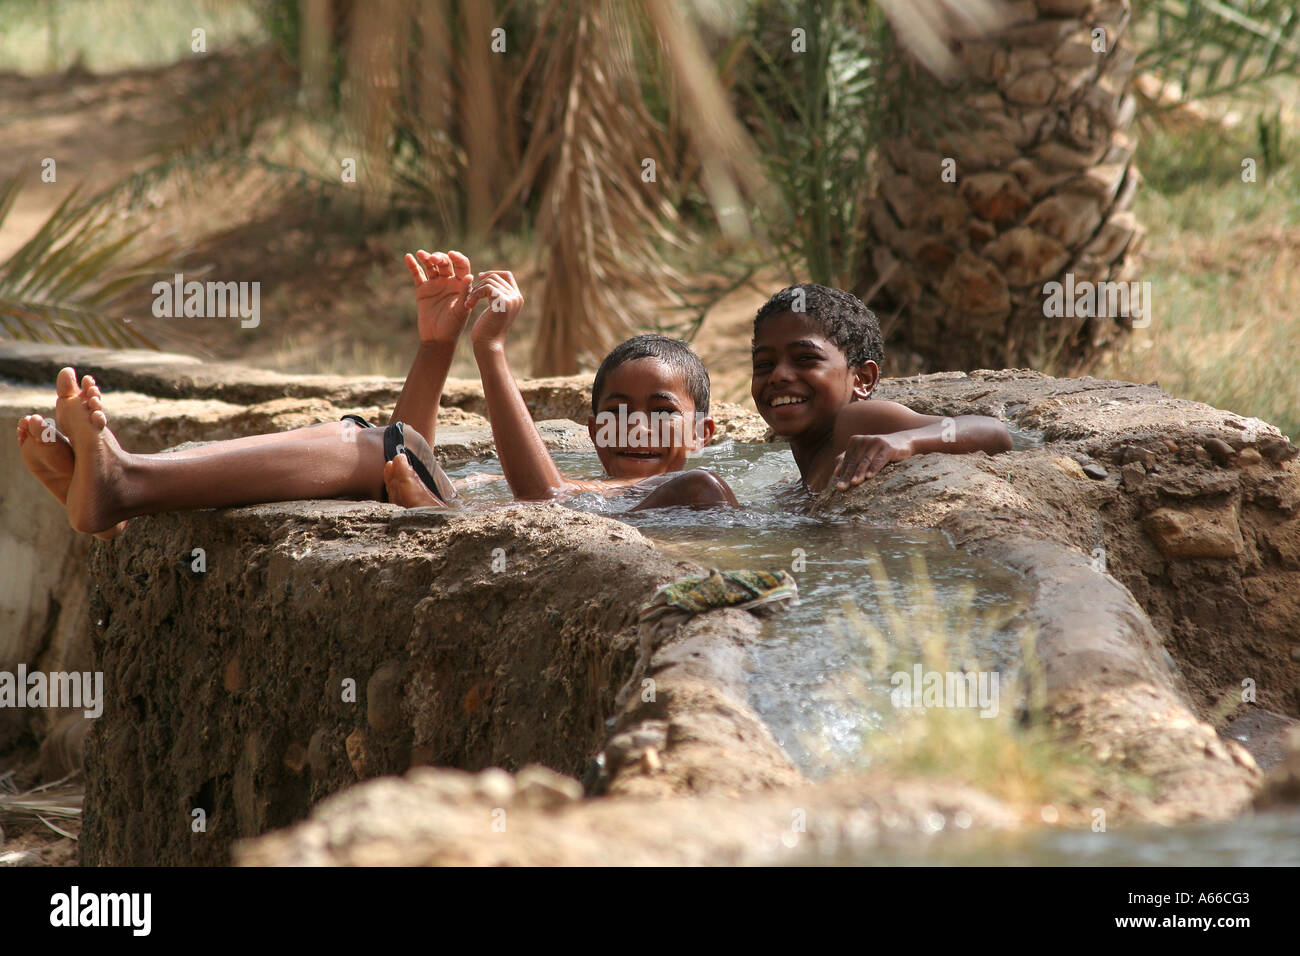 Local boys playing in the waters of the falaj or irrigation ditch in Sur, Oman - Stock Image